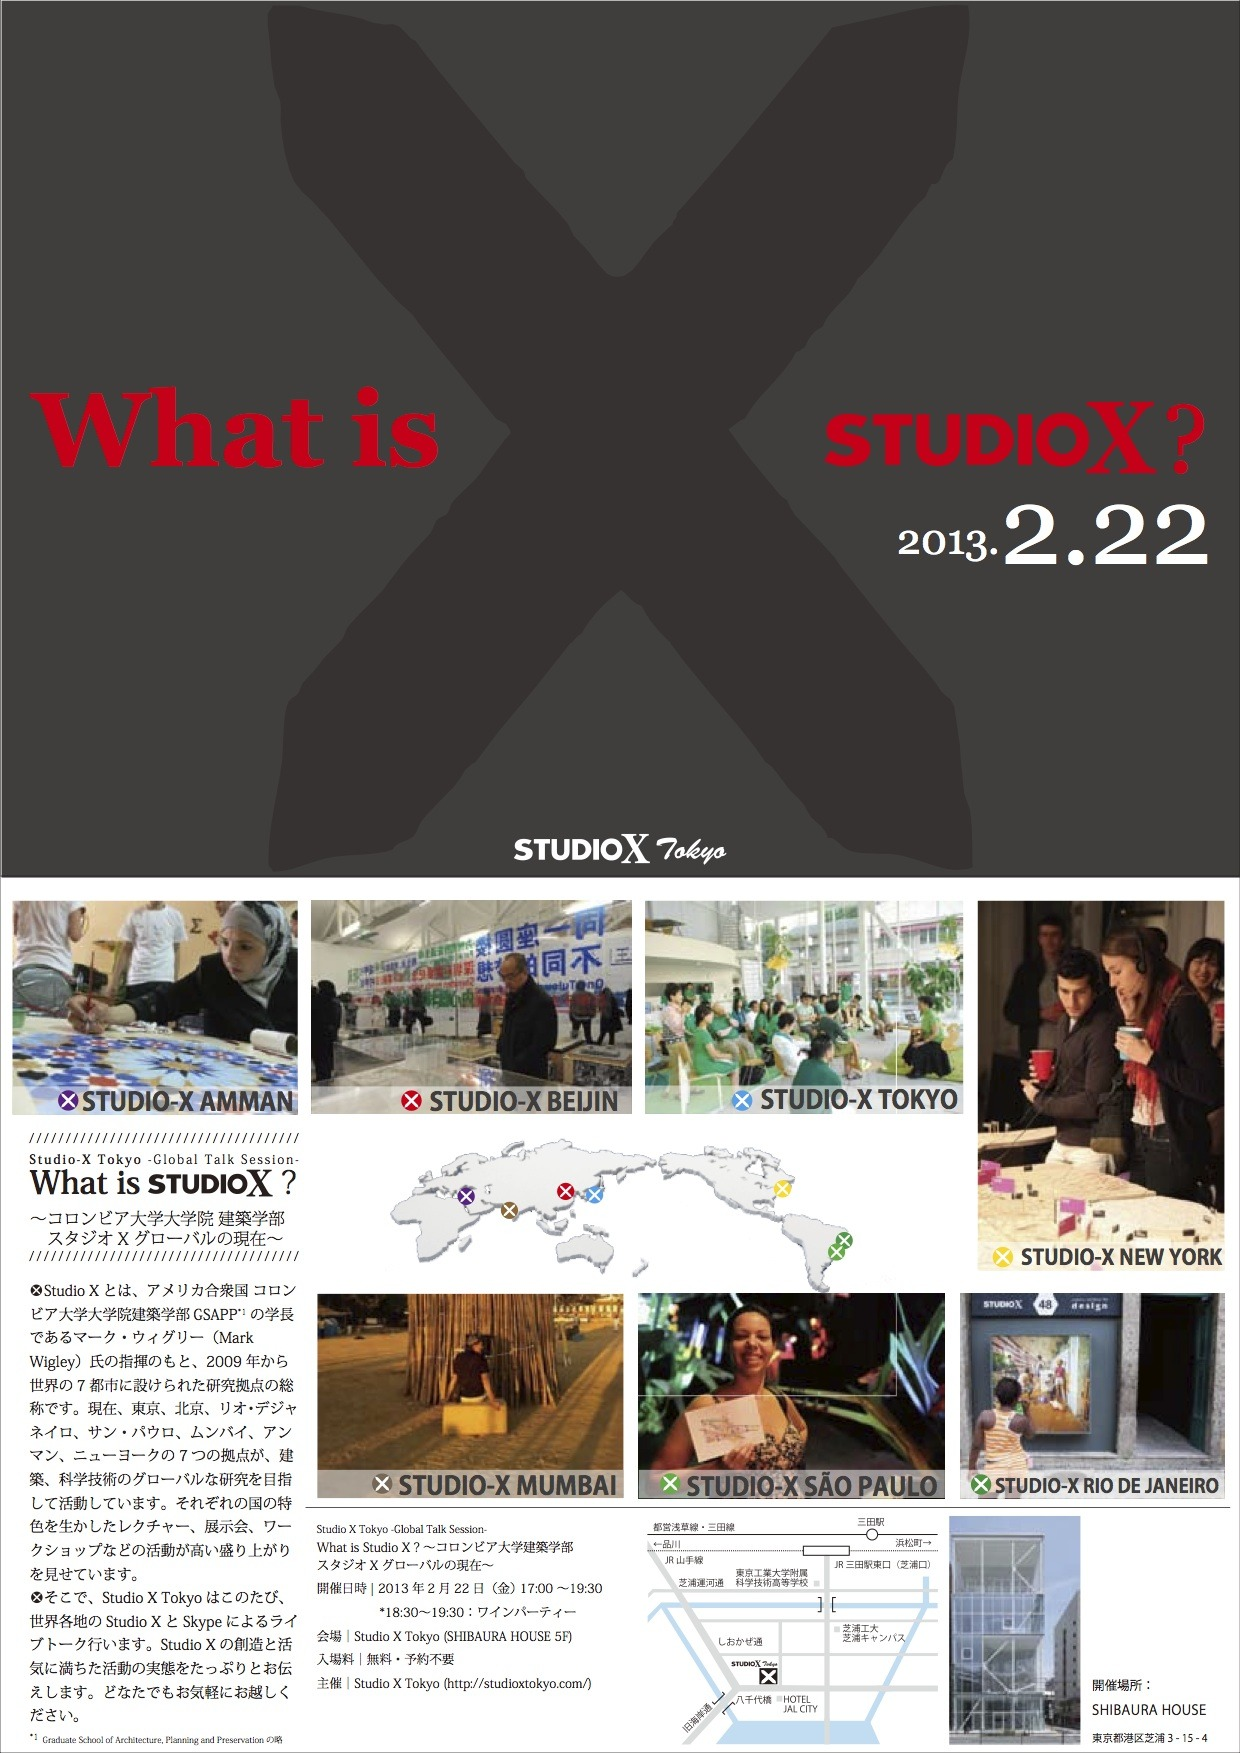 studiox-tokyolab:  This Friday at 5pm, Tokyo Lab will host the first X on X and virtually connect with Directors from all Studio-X locations - Amman, Beijing, Mumbai, New York and Rio - for micro-presentations on activities from around the global network. Click for more details.